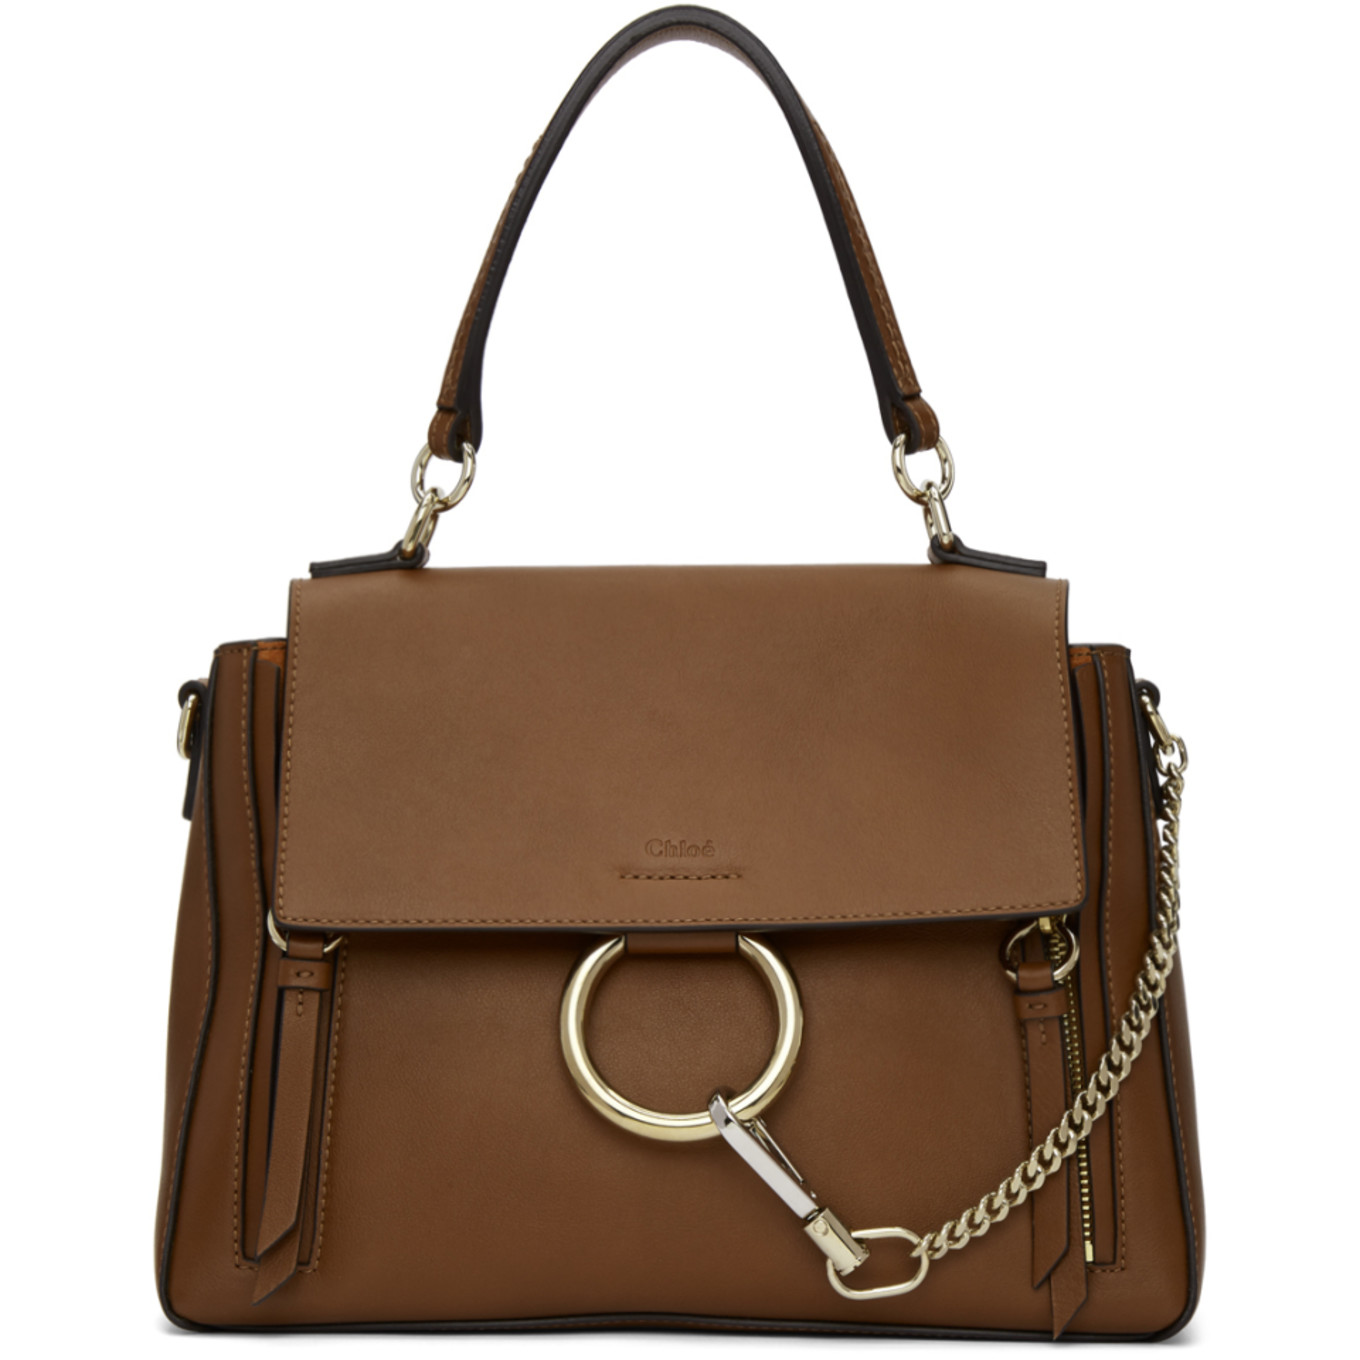 Tan Small Faye Day Bag by ChloÉ